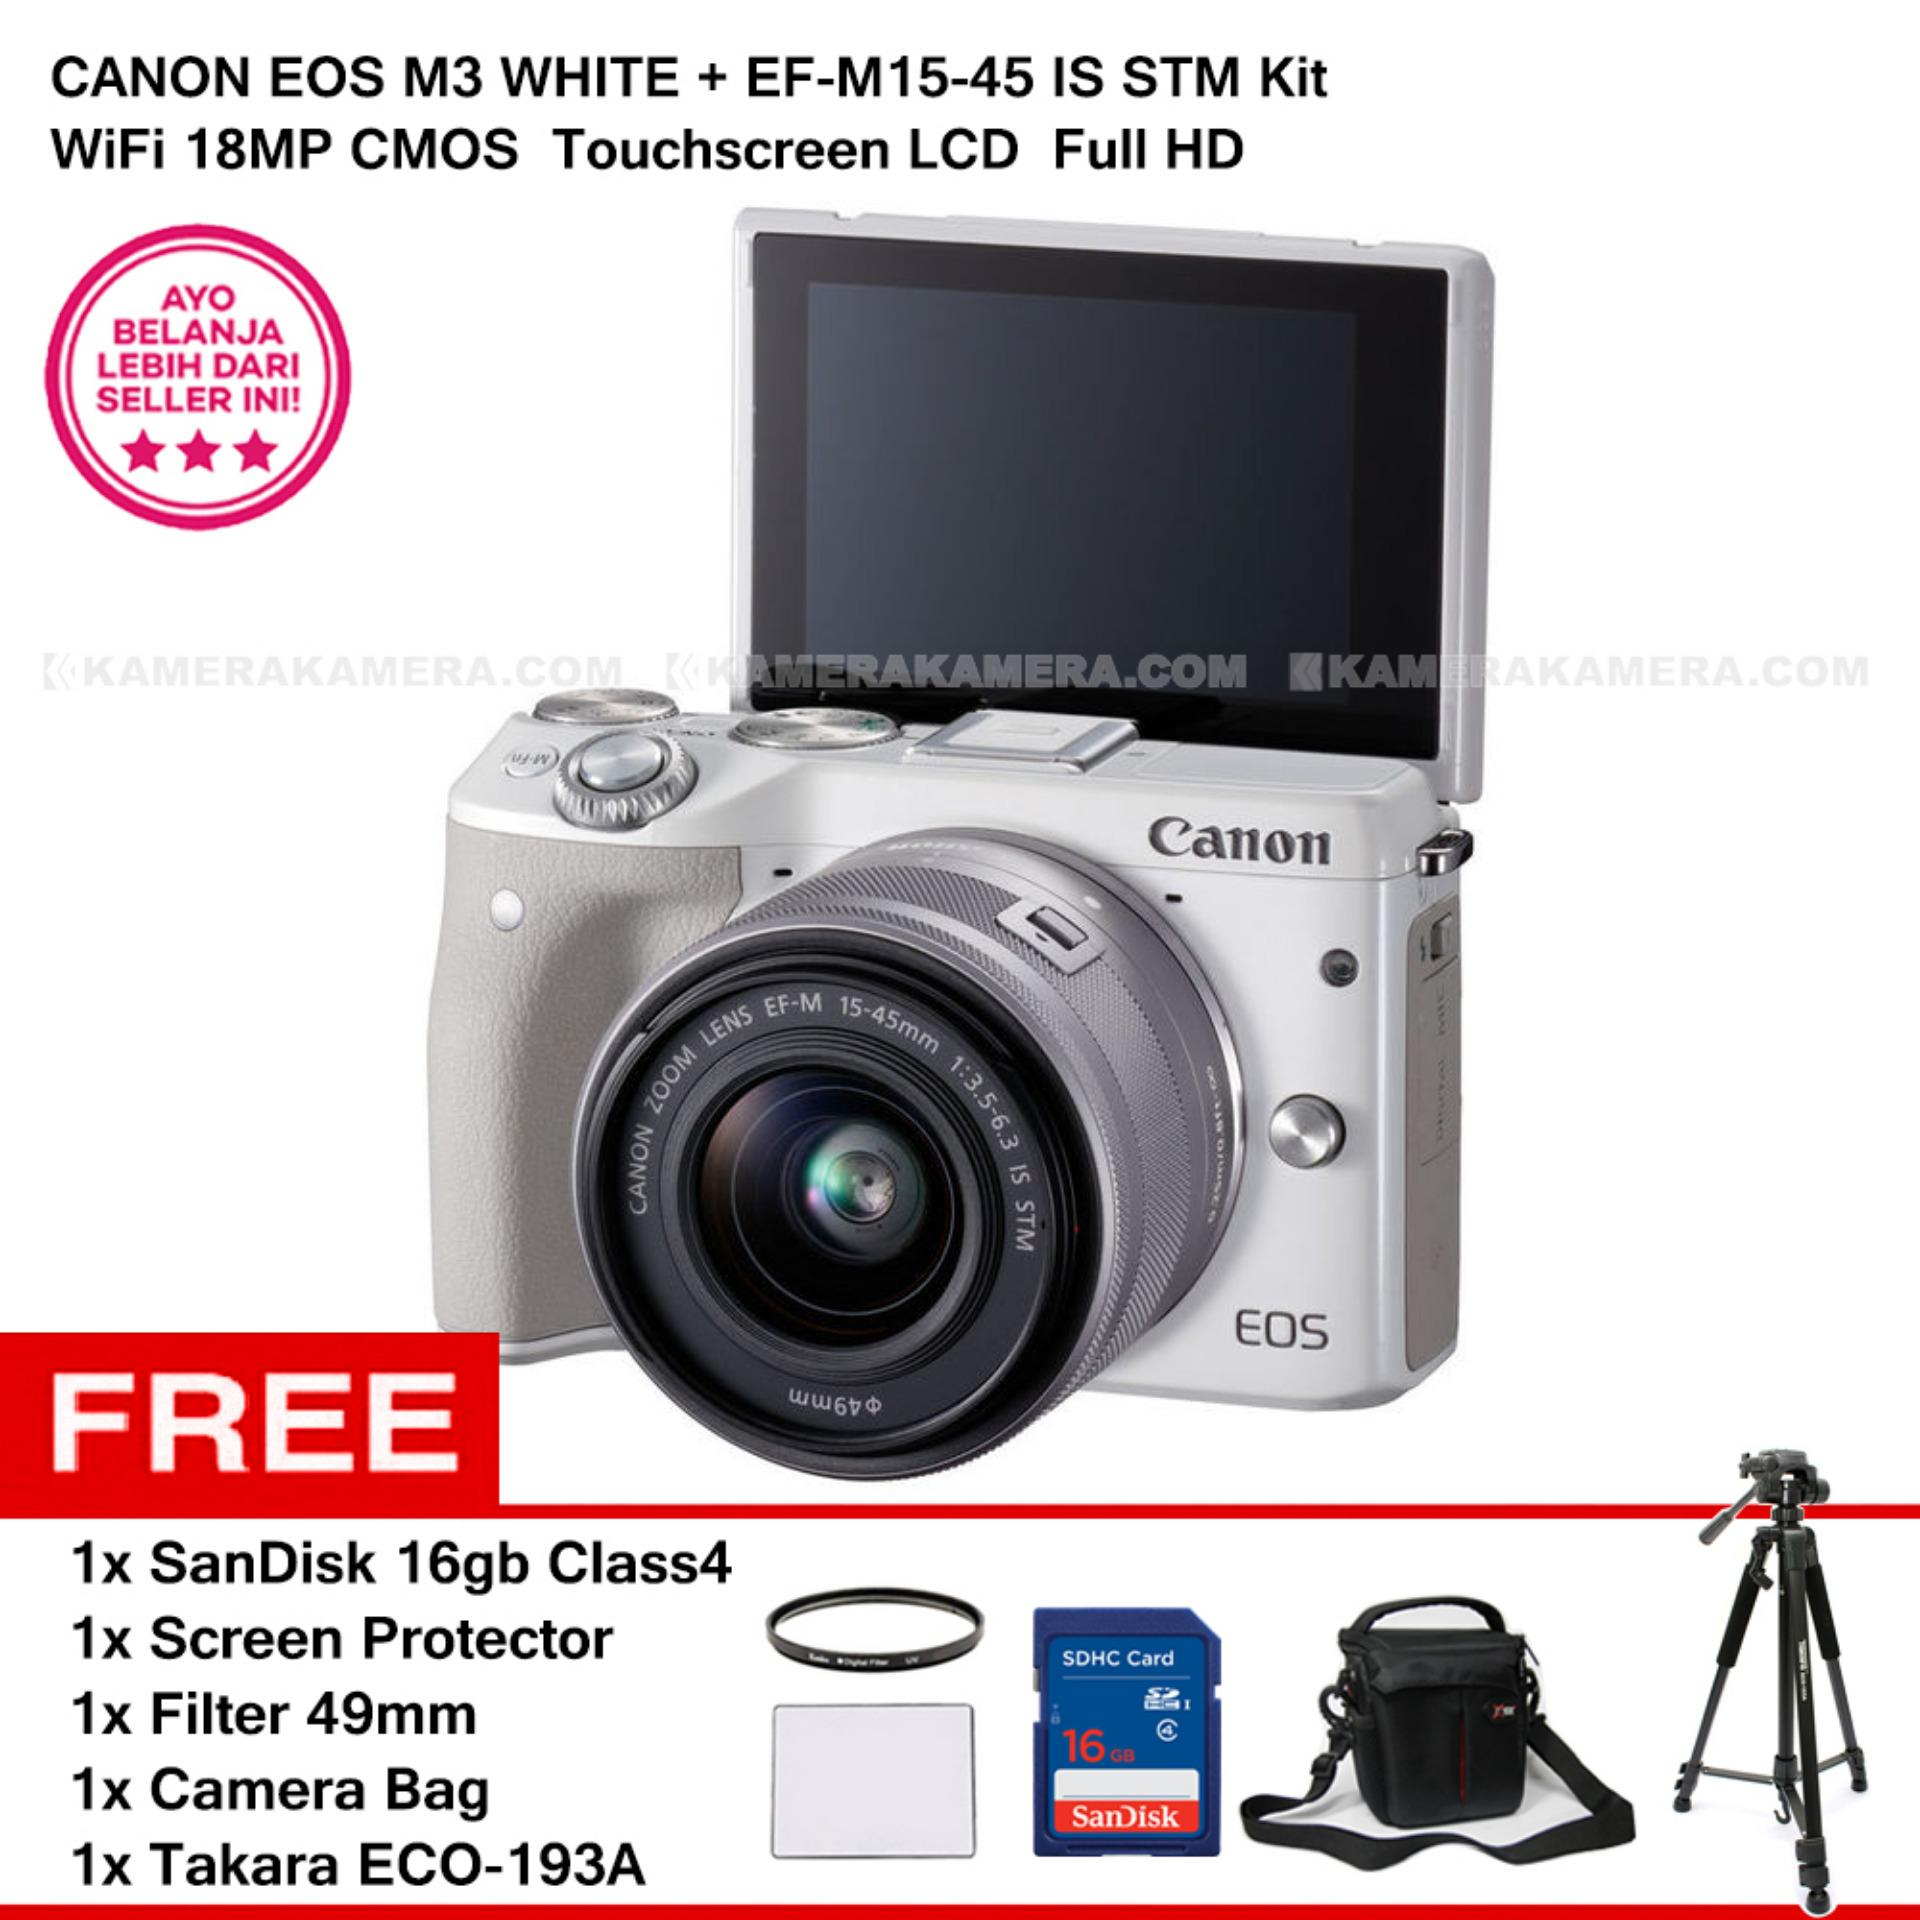 Harga Canon Eos M3 Ef M15 45 Is Stm Kit White 24 2Mp Wifi Touchscreen Lcd Sandisk 16Gb Screen Protector Filter 49Mm Camera Bag Takara Eco 193A Online